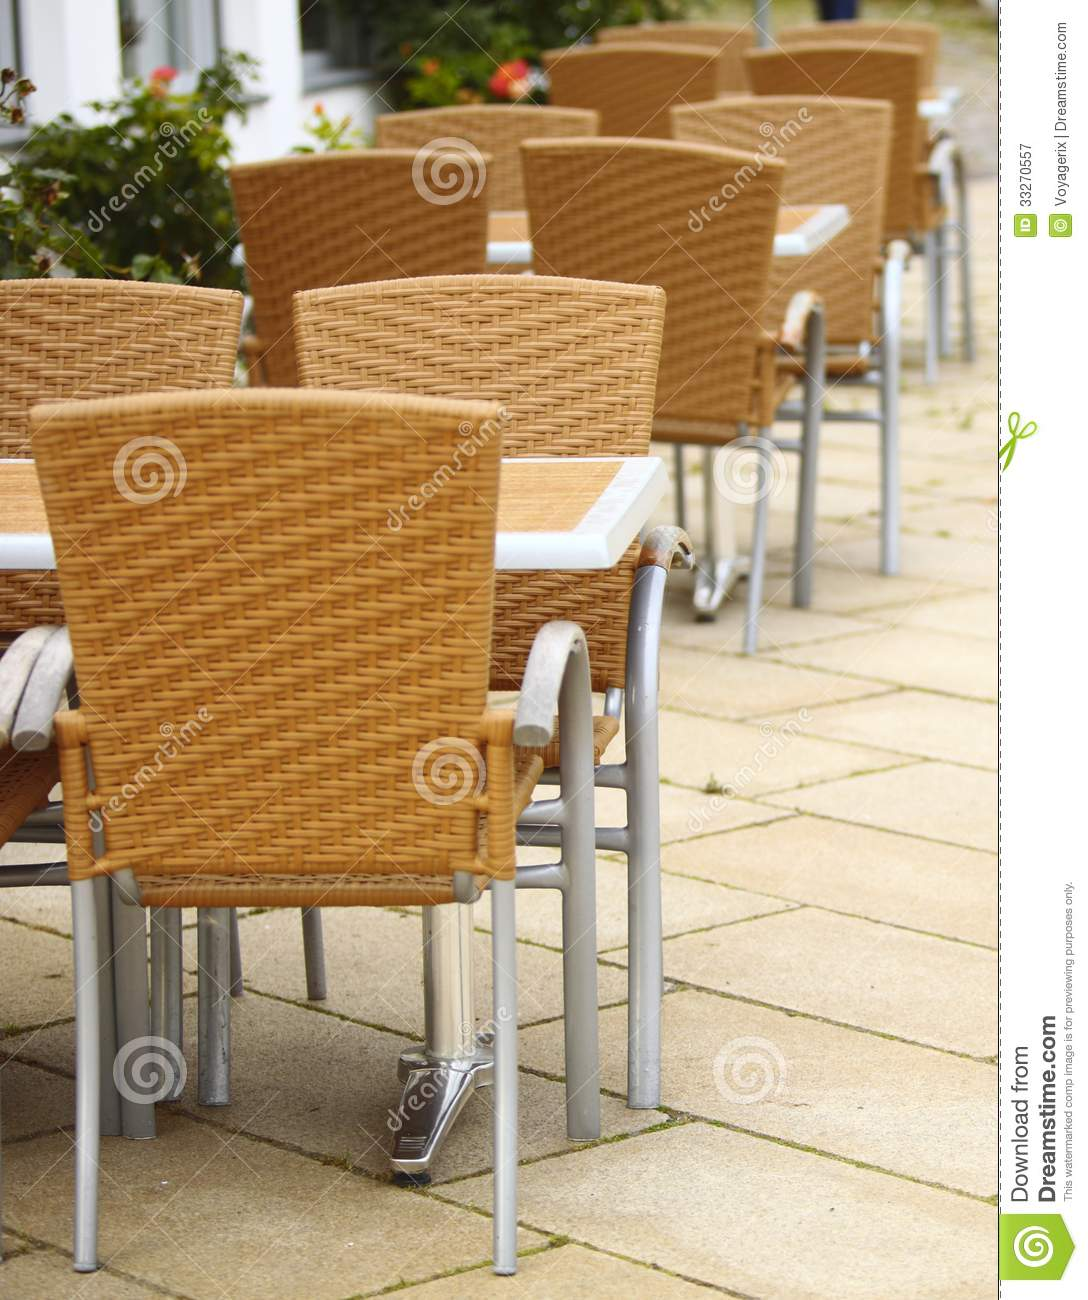 Outdoor Cafe Chairs Outdoor Restaurant Cafe Chairs With Table Stock Image